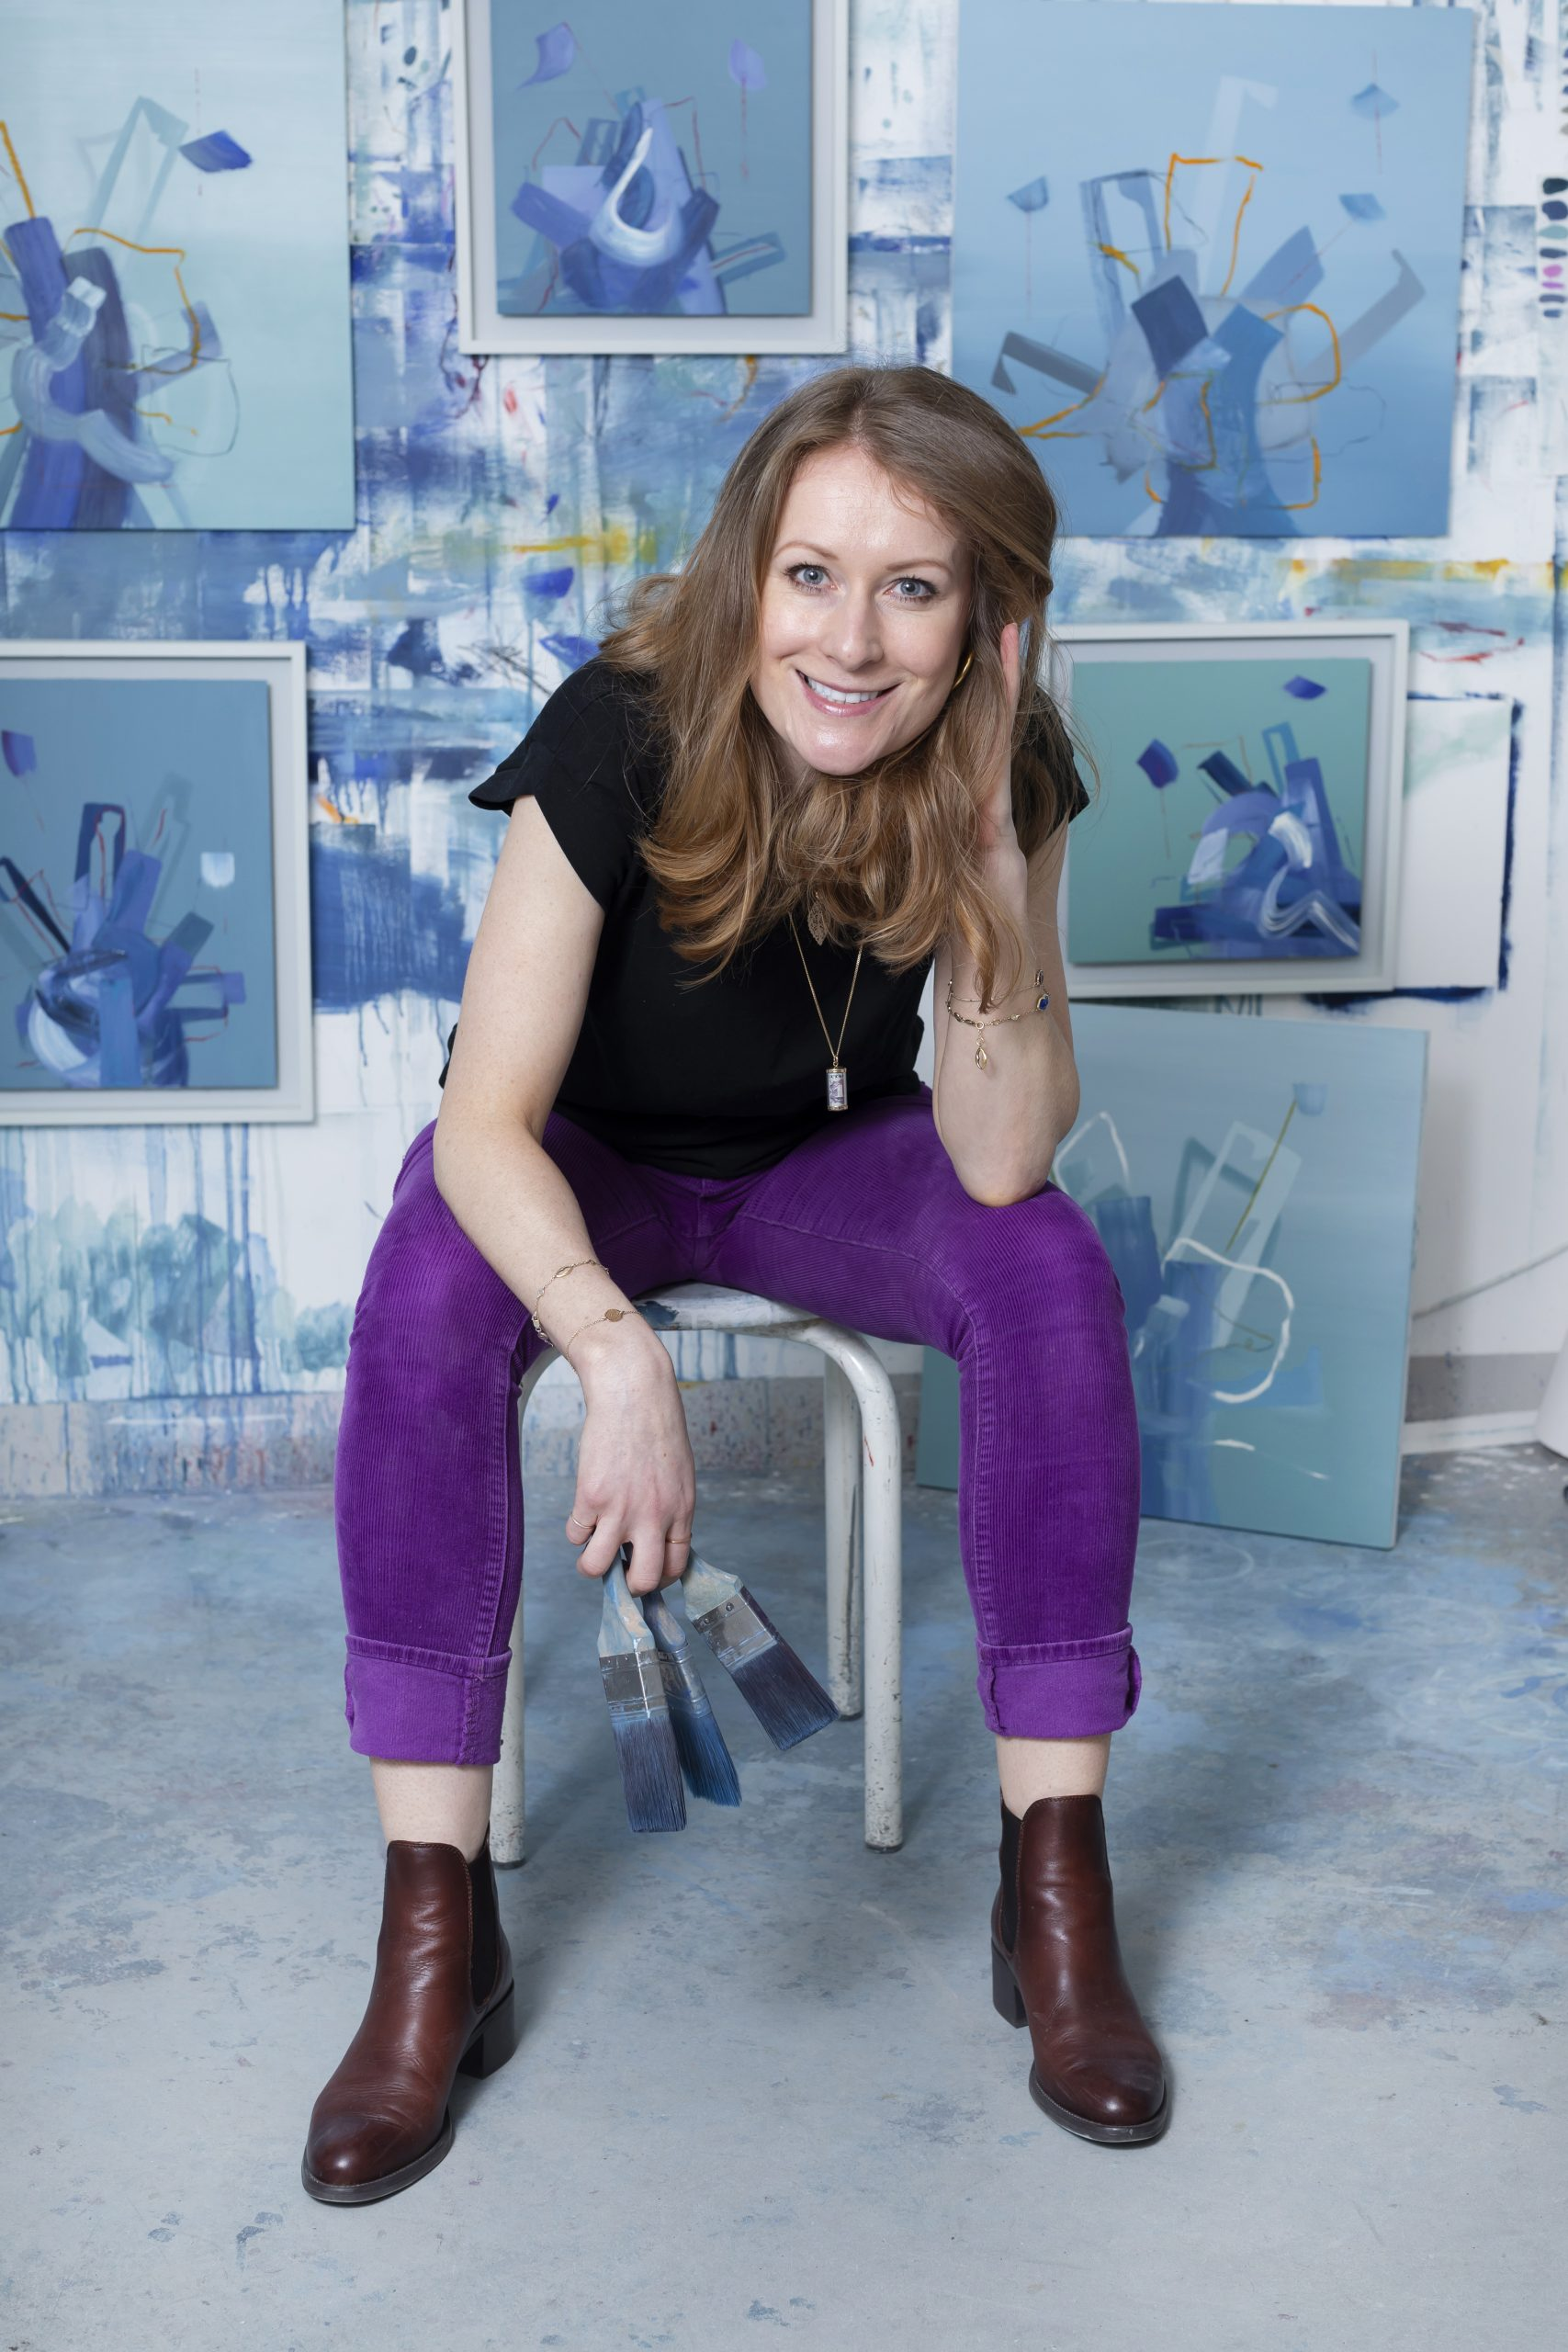 Abstract painter aisling drennan in her studio holding paintbrushes with green & blue paintings in the background. Abstract art painting, Abstract art canvas, Abstract oil painting, Contemporary painting, Oil painting, Original oil painting, Painting, paintings, art studio, abstract painting, art collector, abstract art collector, painting collector Abstract artists, Modern art, Modern wall art, Modern abstract, artists, Female abstract artists, Abstract artists uk, Abstract artists ireland, Irish artist, female artist, Irish abstract artist, Aisling Drennan, Aisling drennan painting, Aisling drennan, art, abstract art uk, irish abstract art, female abstract artists